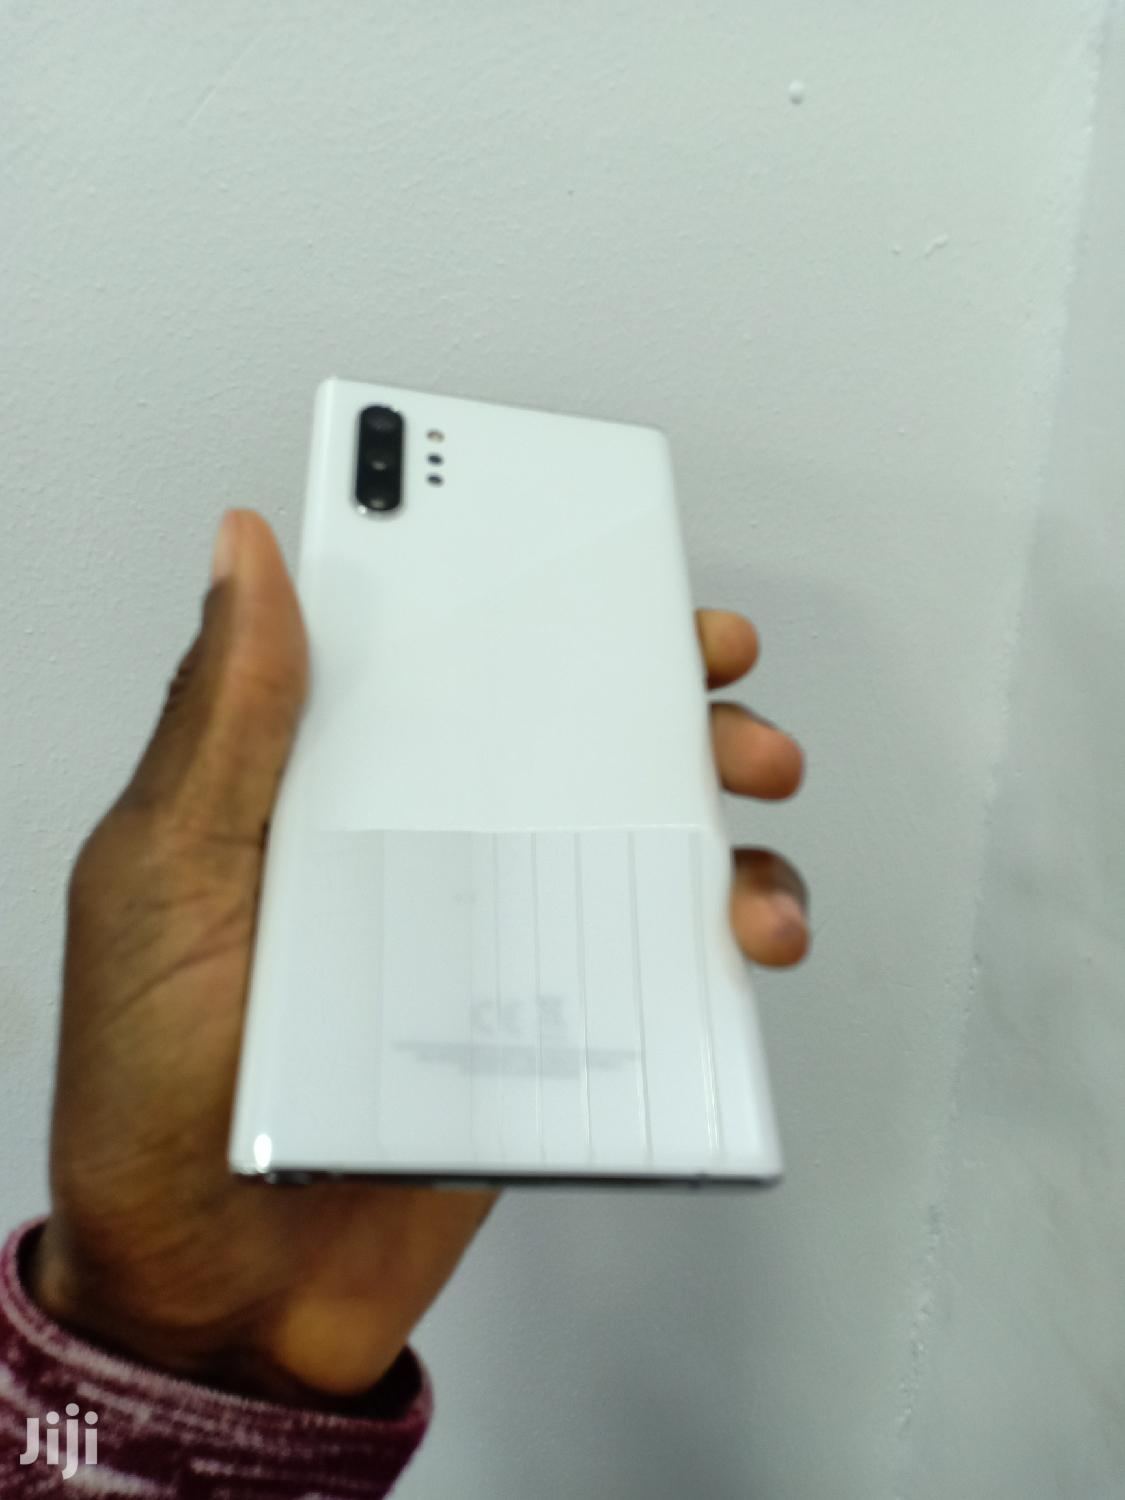 Samsung Galaxy Note 10 Plus 256 GB White | Mobile Phones for sale in Kampala, Central Region, Uganda